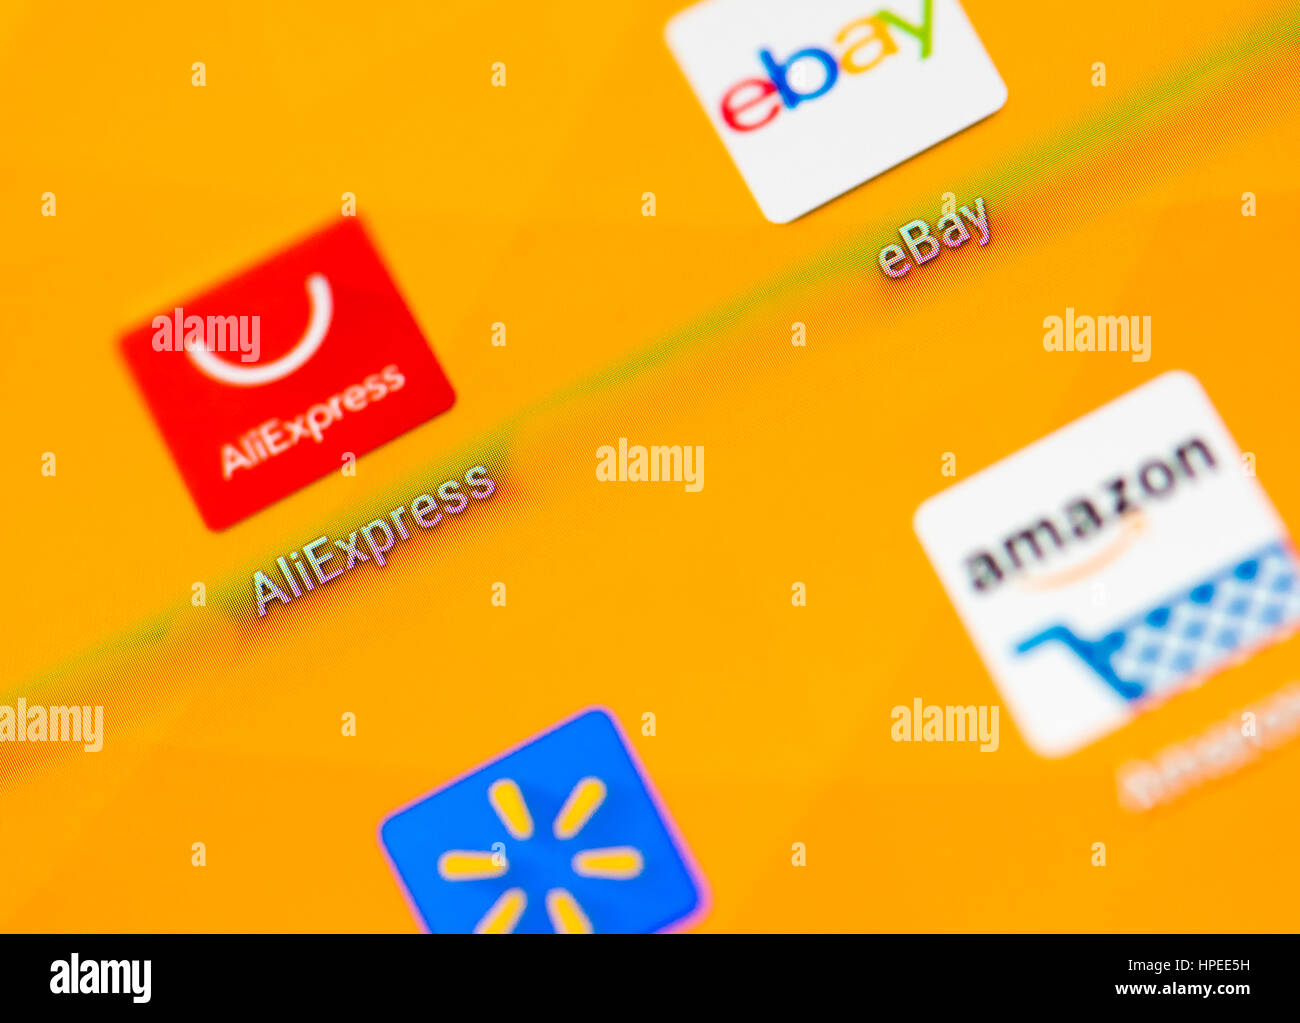 The Icons Of Aliexpress Ebay Amazon And Walmart Online Shopping